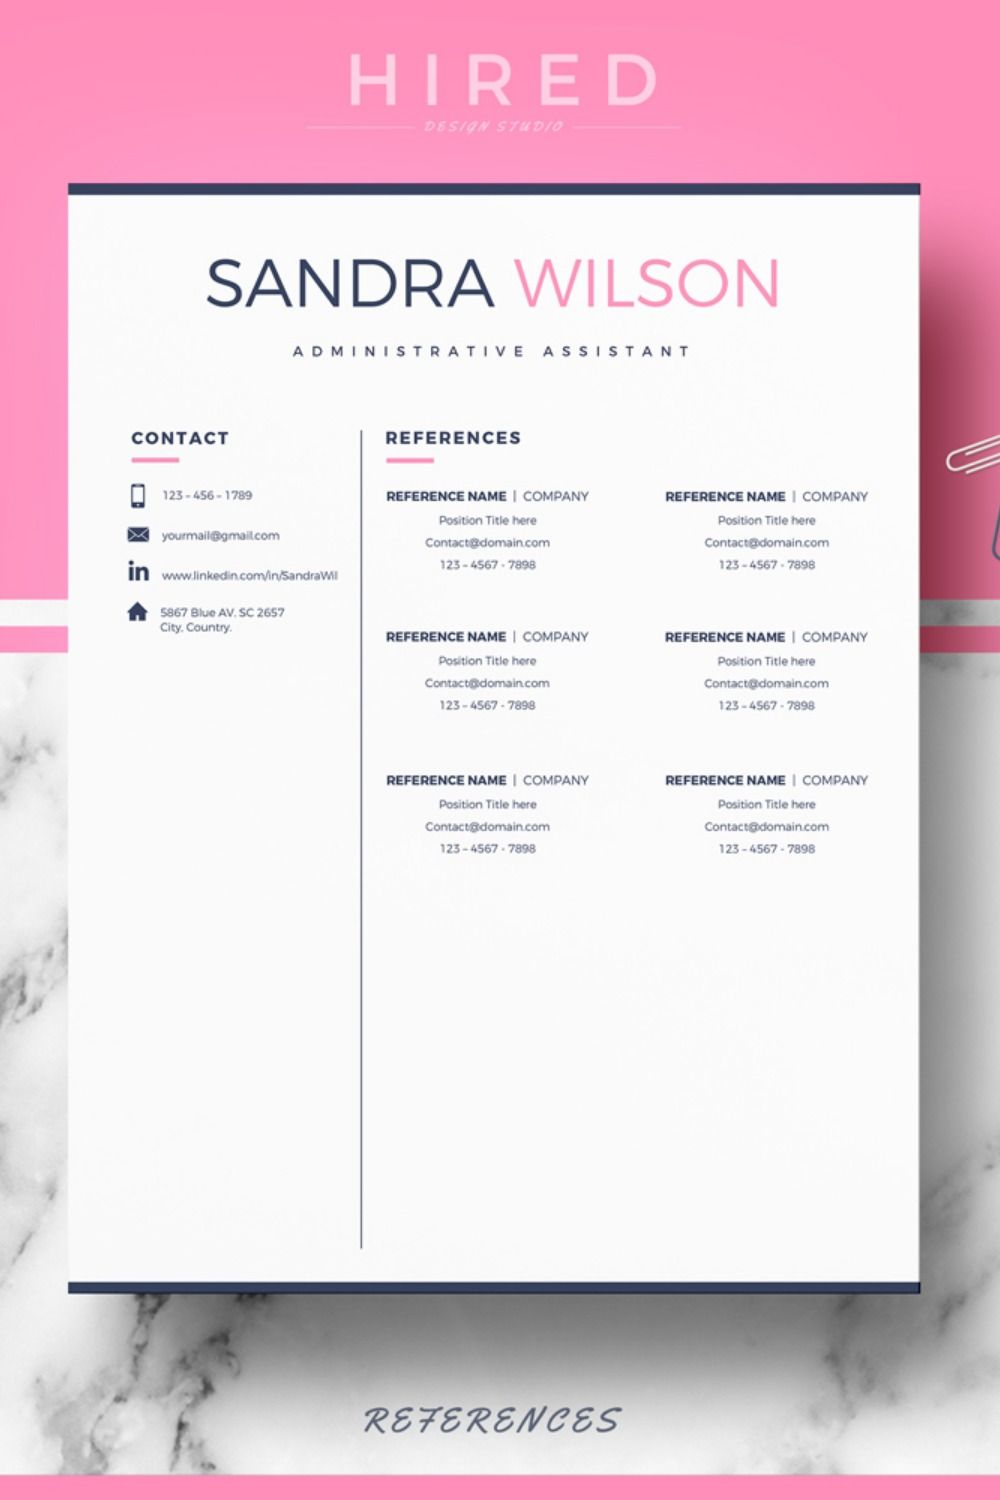 Use the same visuals or letterhead you used for your